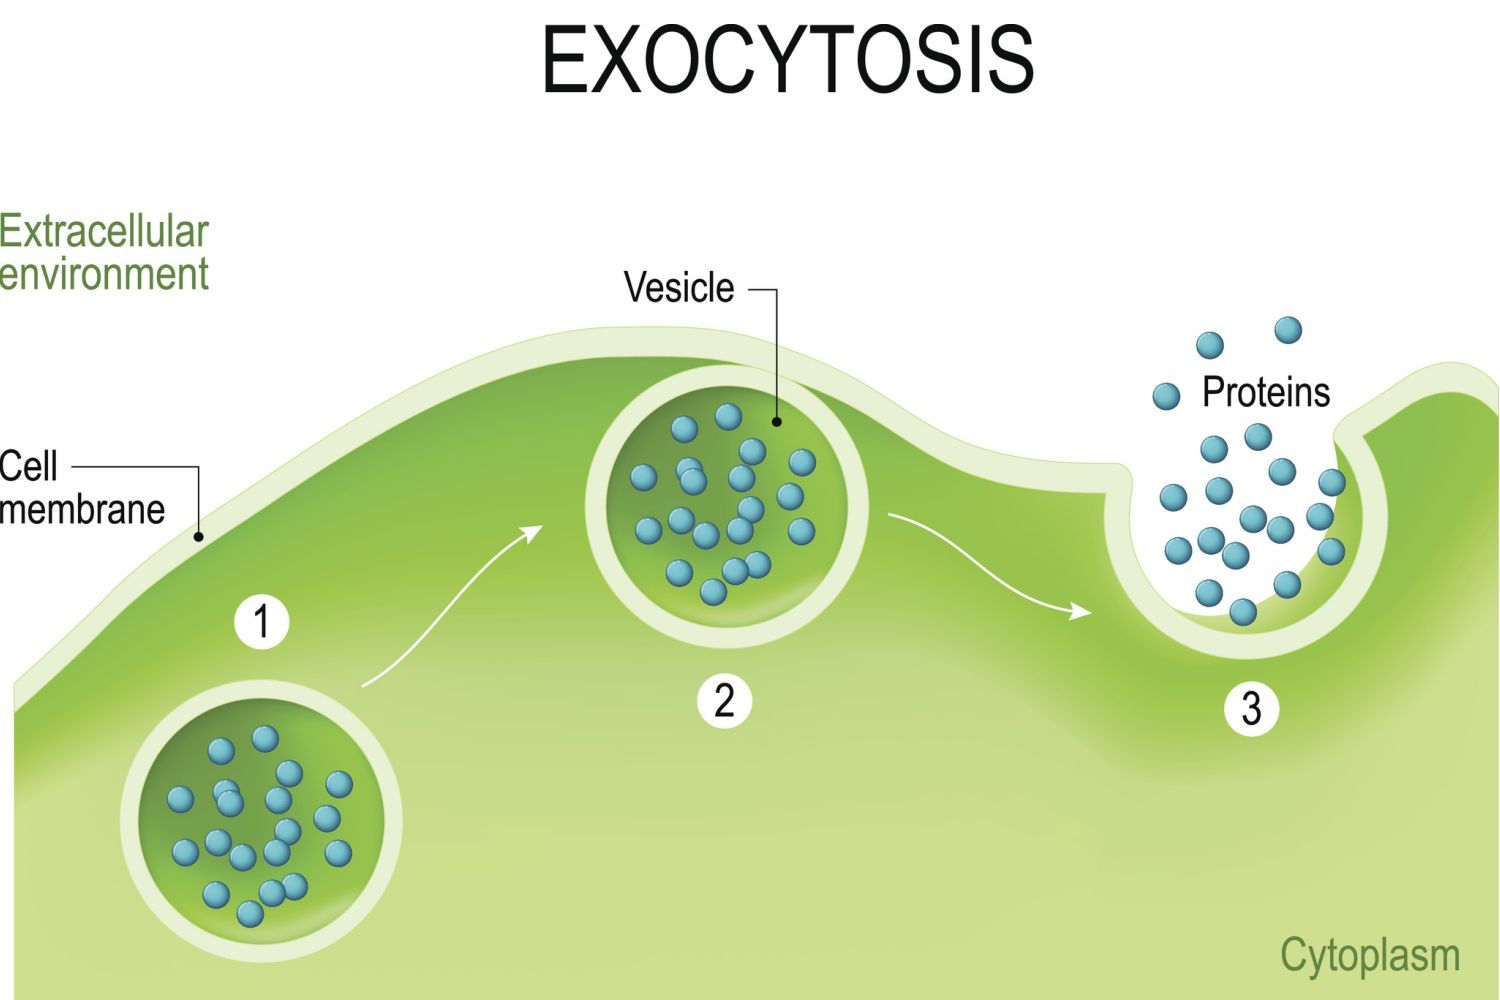 Steps of Exocytosis | Cell membrane, Human anatomy and ...